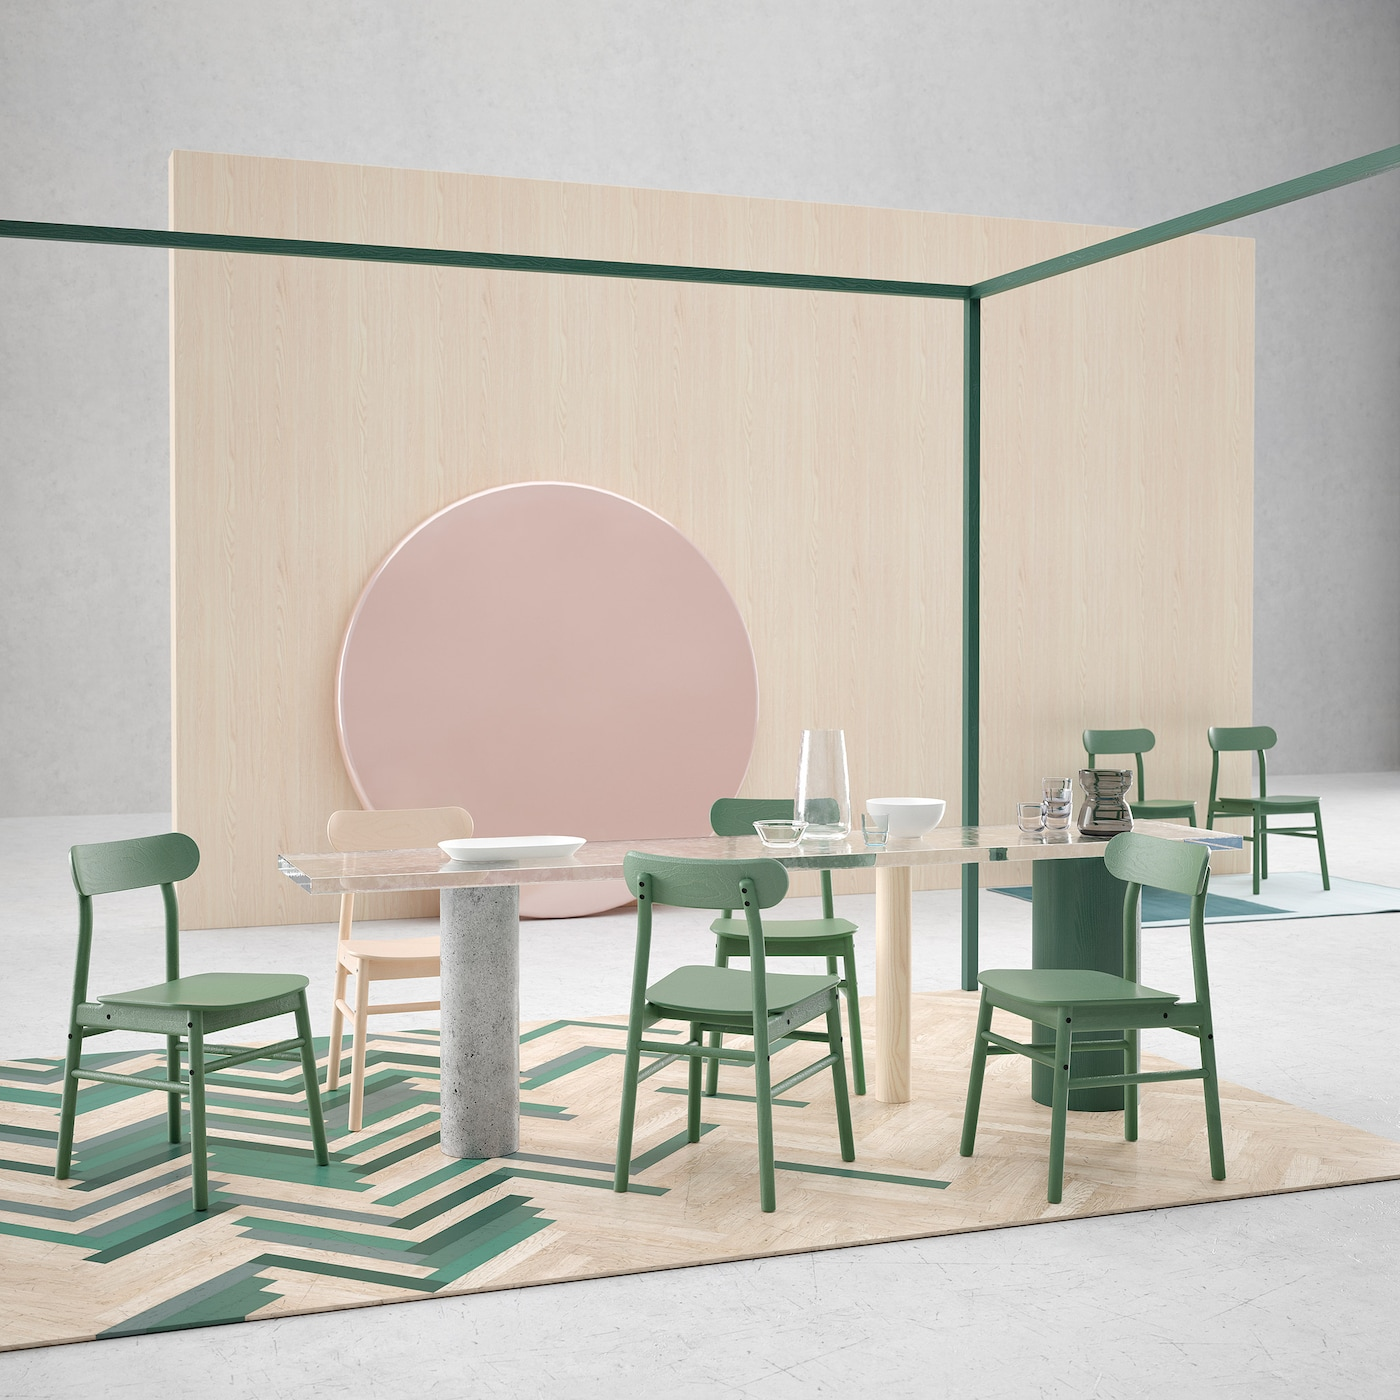 Linger longer at the dining table in a sturdy RÖNNINGE chair from IKEA. It has timeless Scandinavian design made in birch with a rounded-shaped seat and angled back. It's shown with and without a green tint.